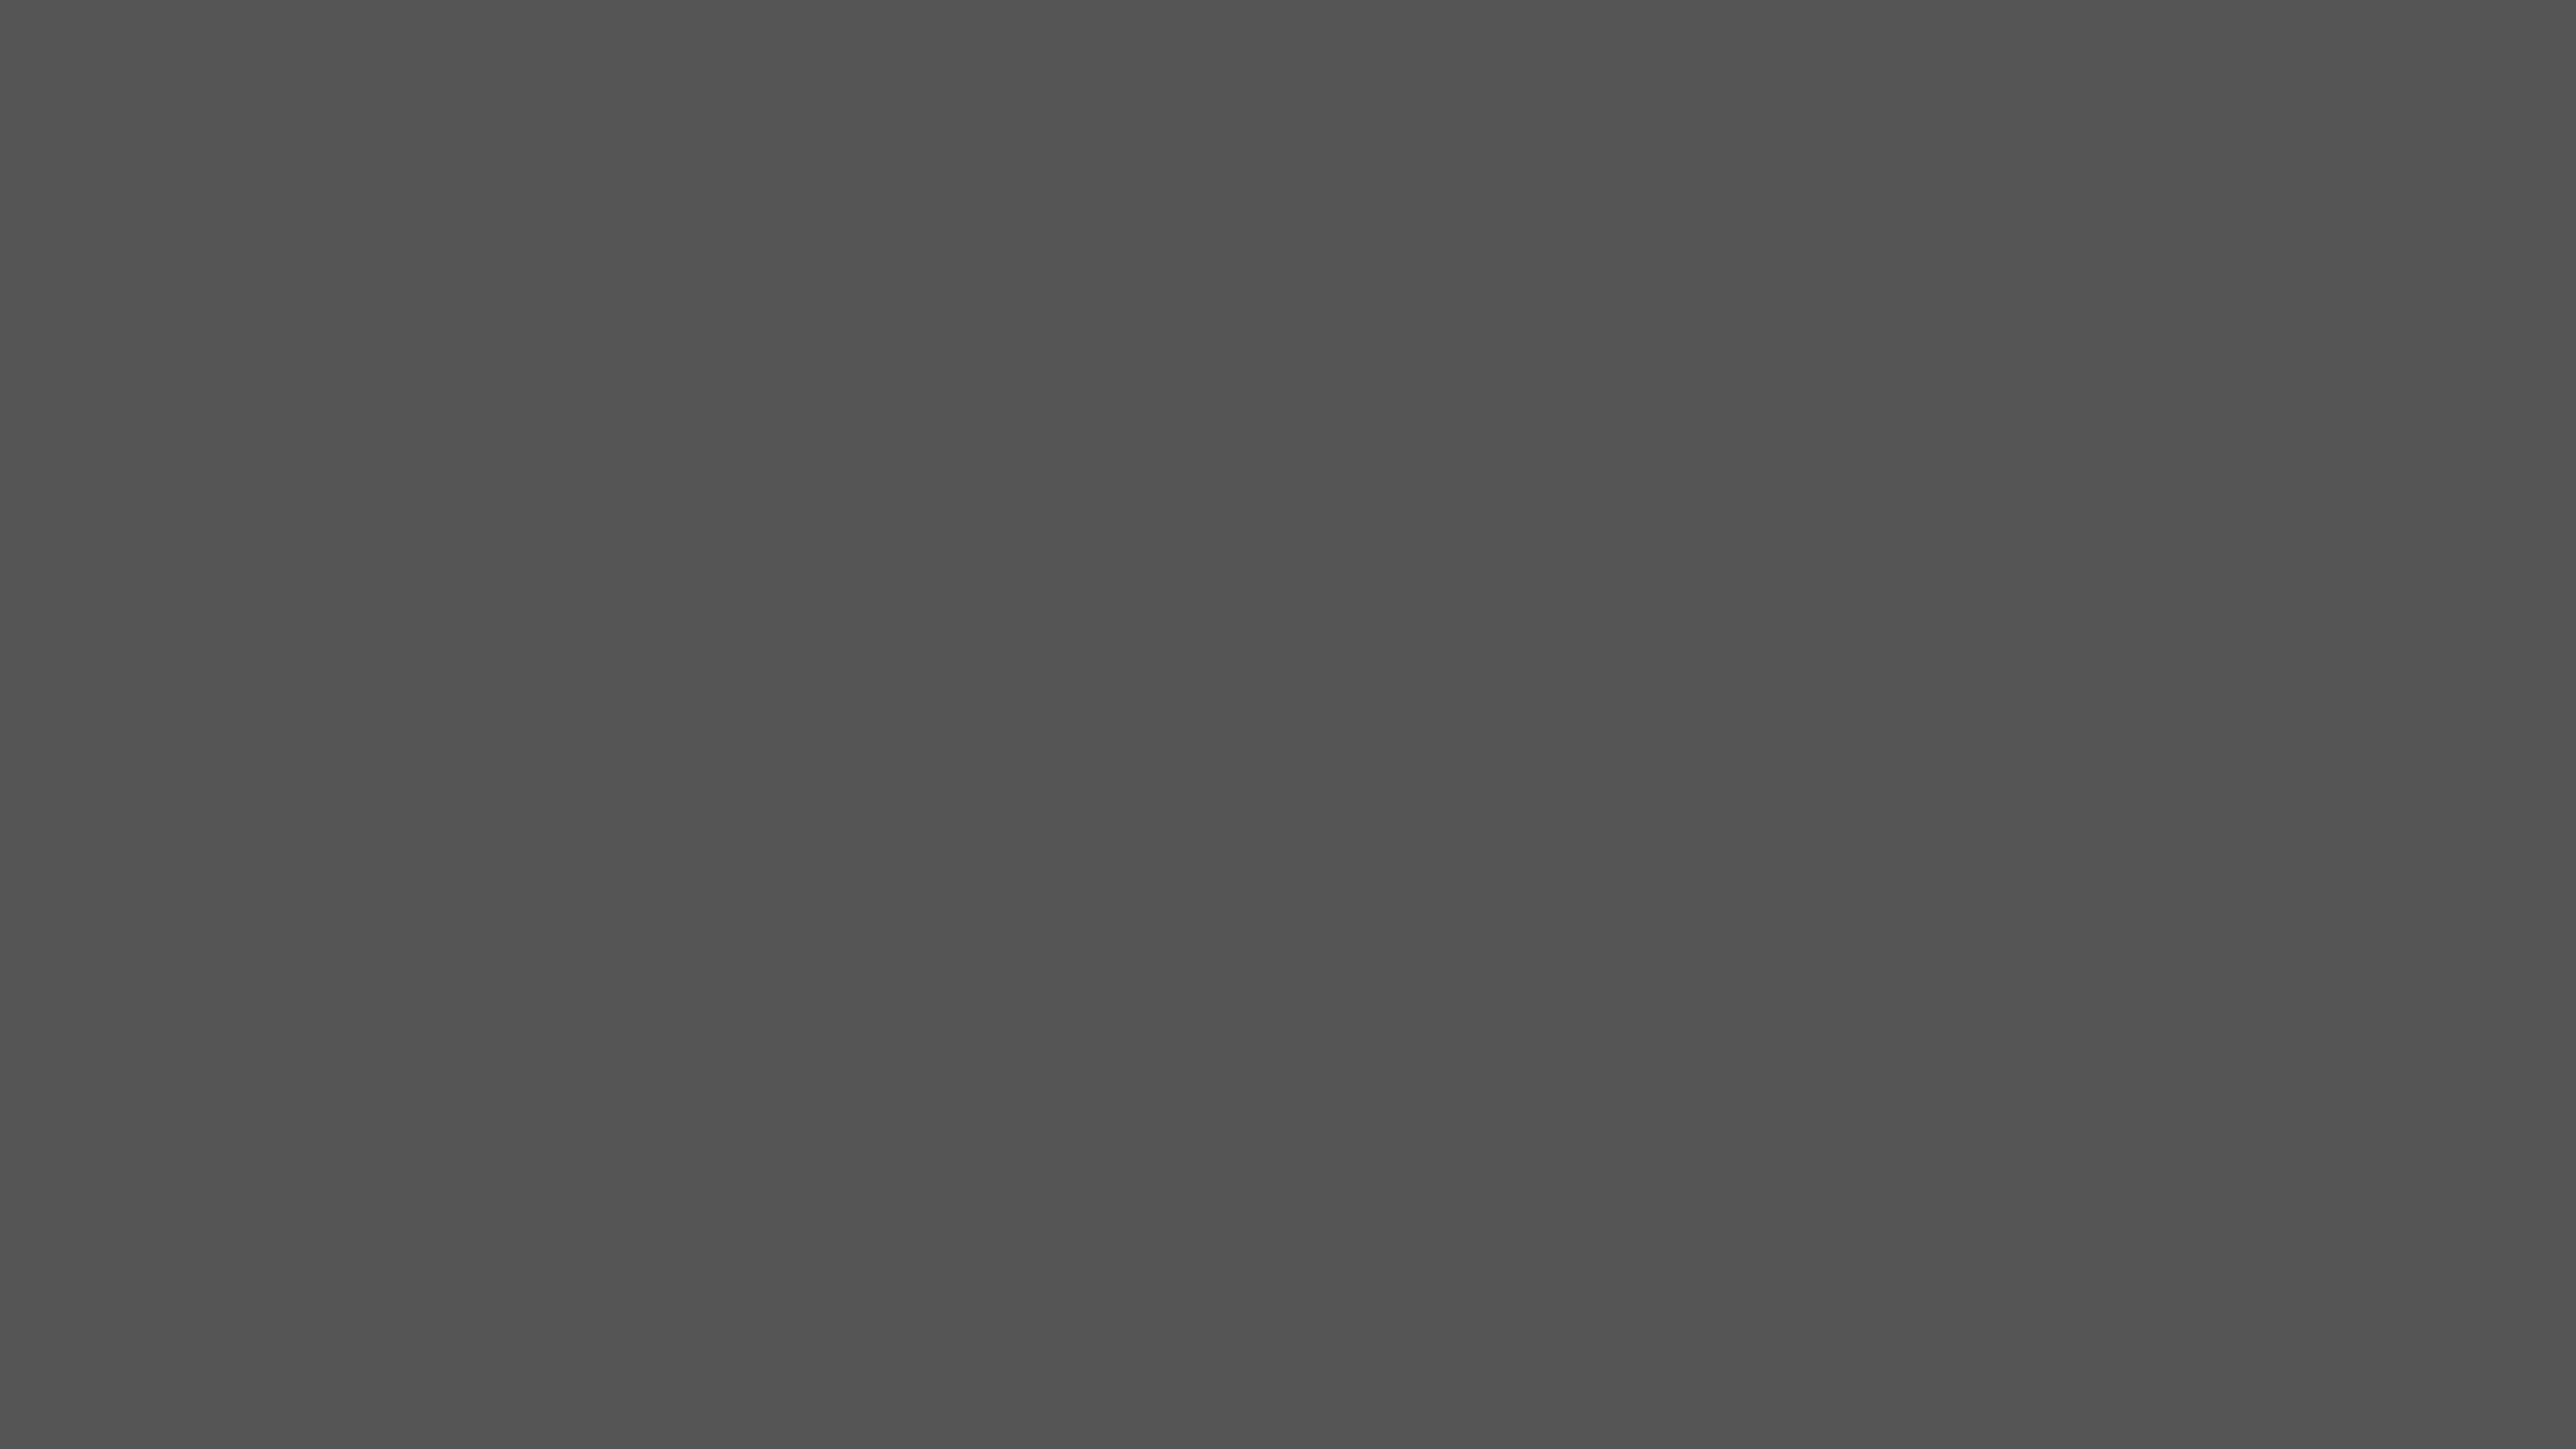 3840x2160 Davys Grey Solid Color Background